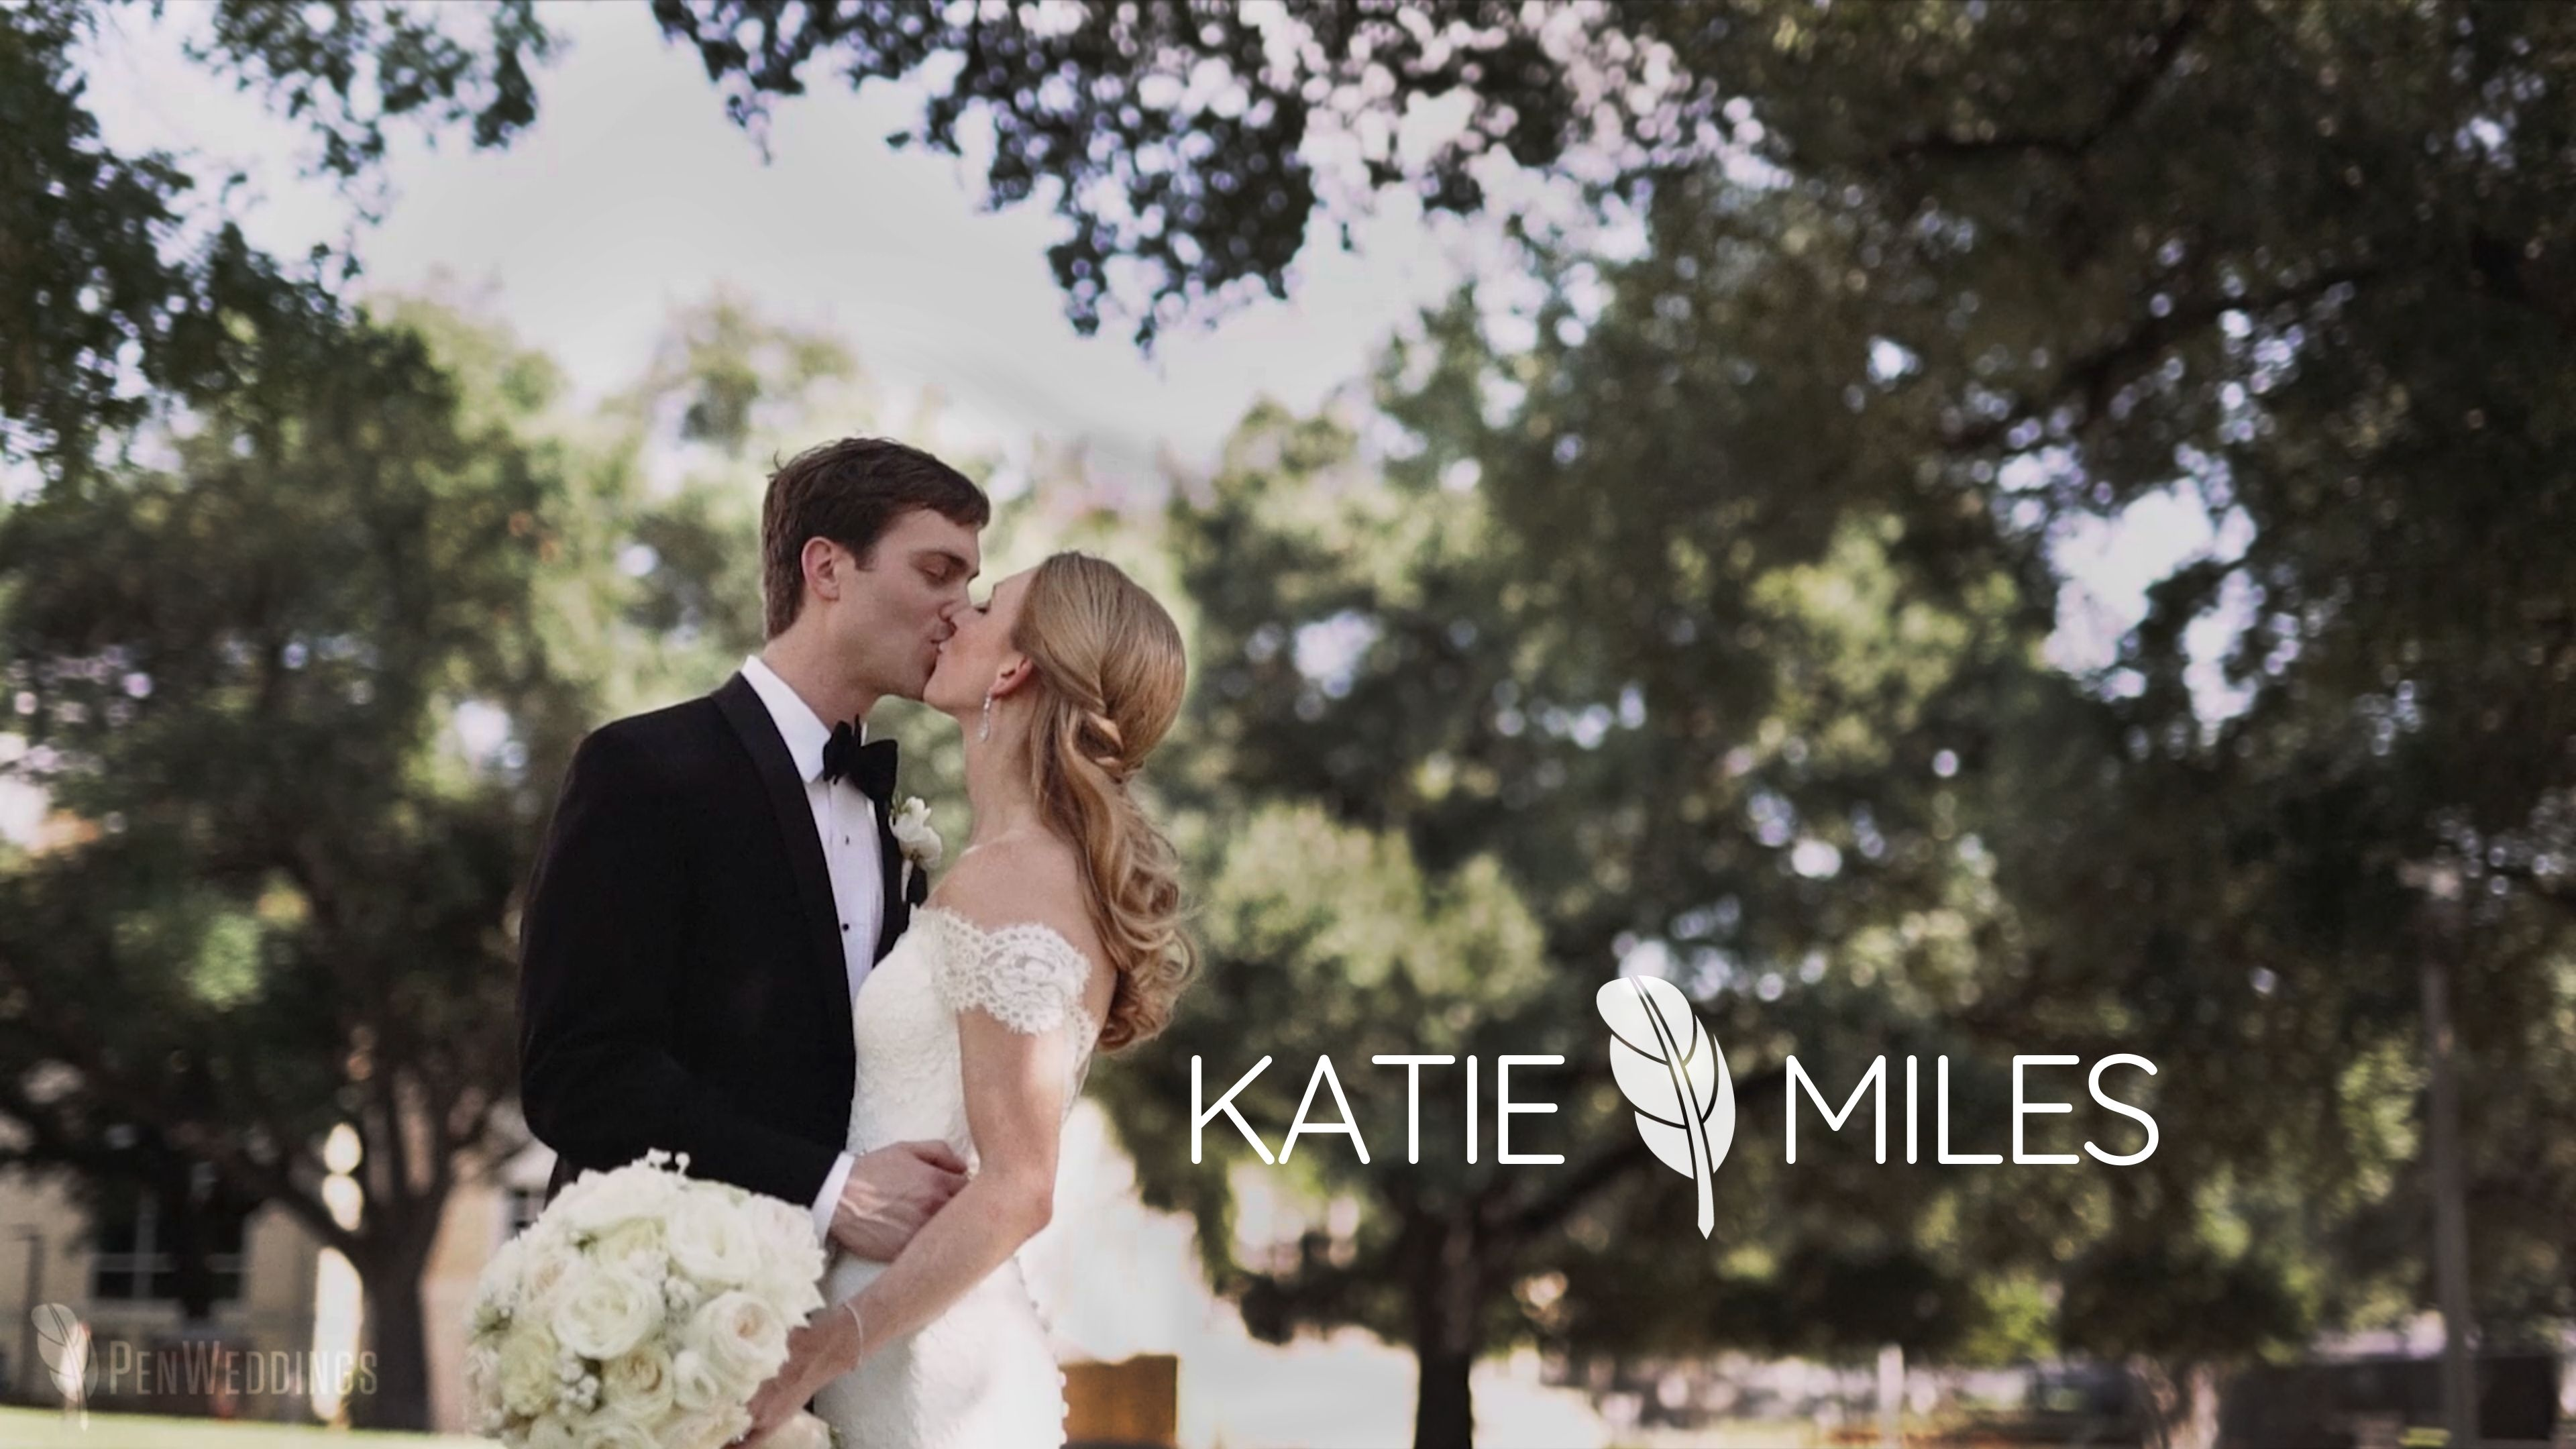 Katie + Miles | Fort Worth, Texas | Fort Worth Club